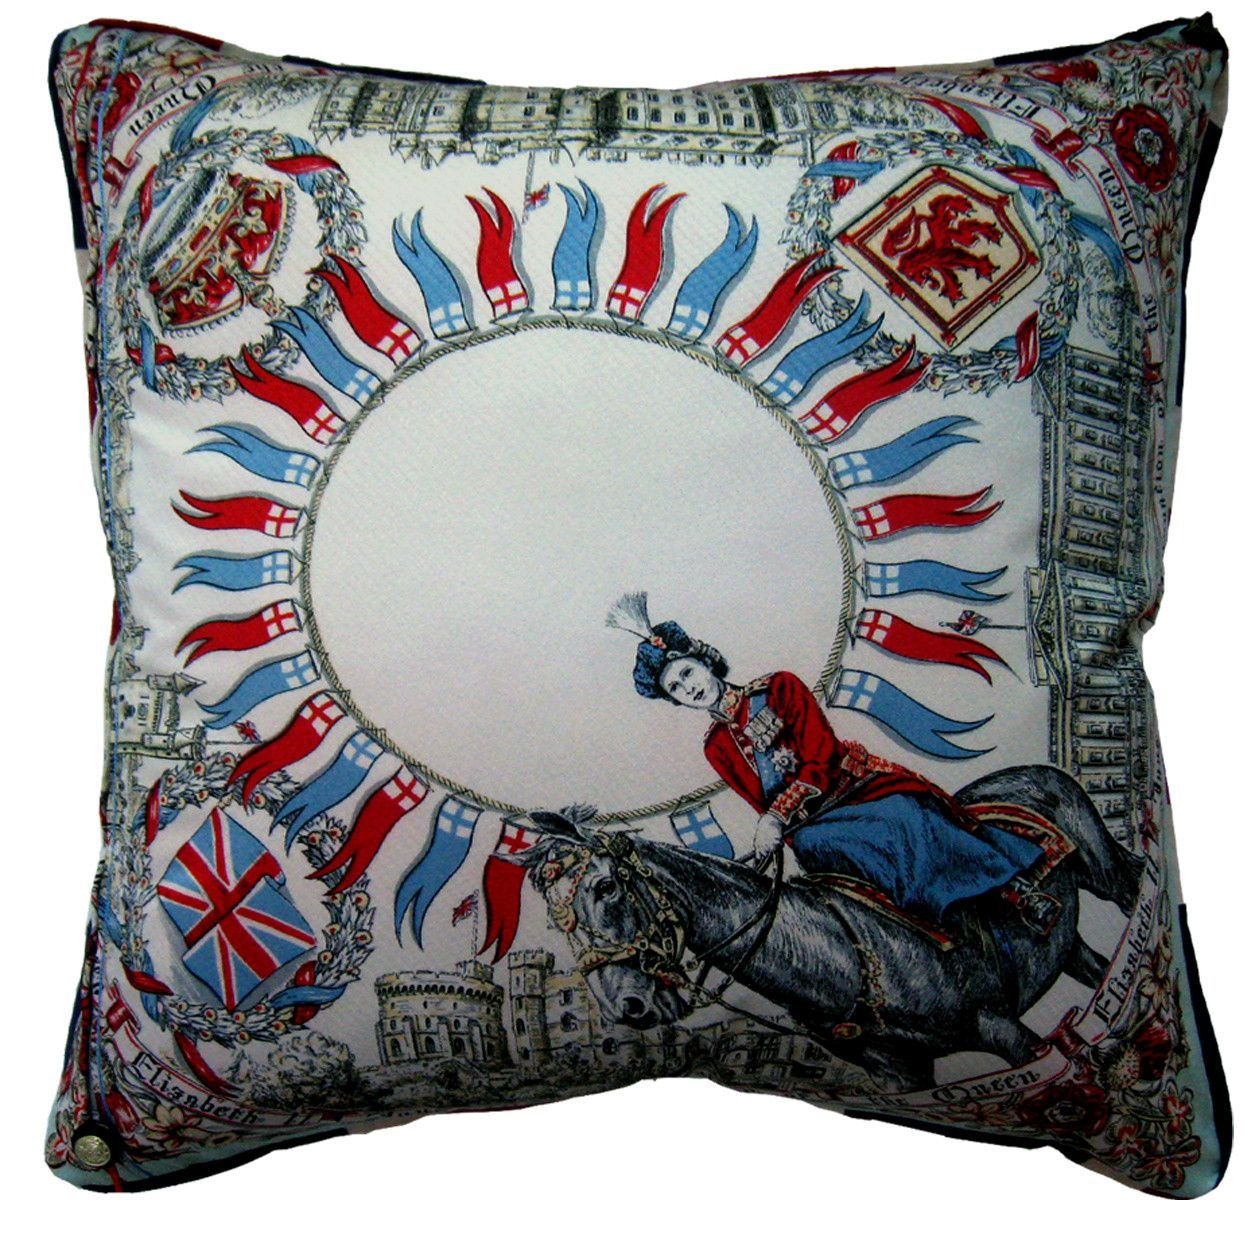 Ceremonial Route Cushion Cover